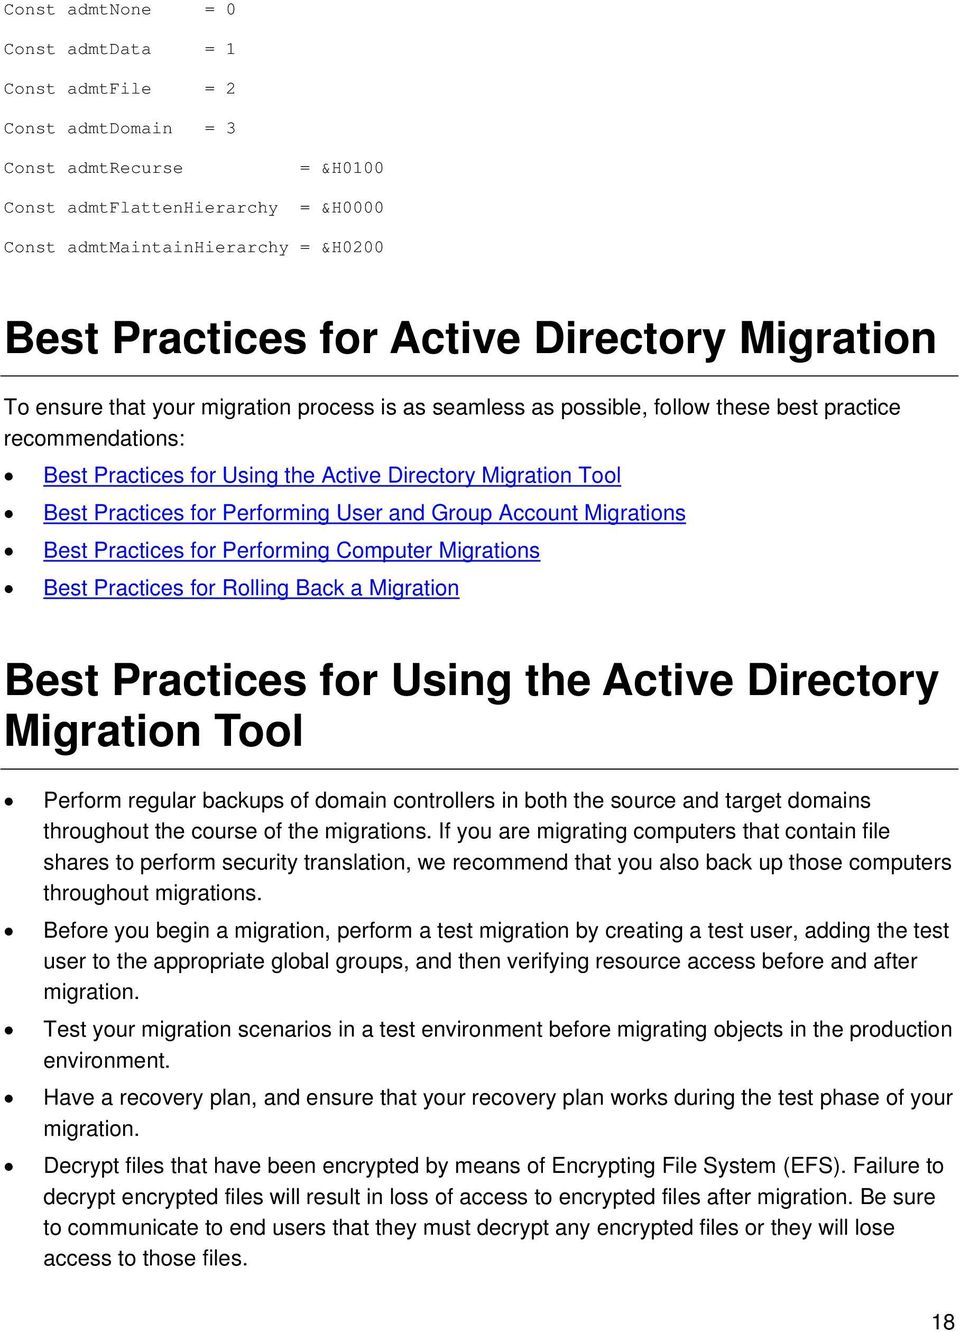 Best Practices for Performing User and Group Account Migrations Best Practices for Performing Computer Migrations Best Practices for Rolling Back a Migration Best Practices for Using the Active